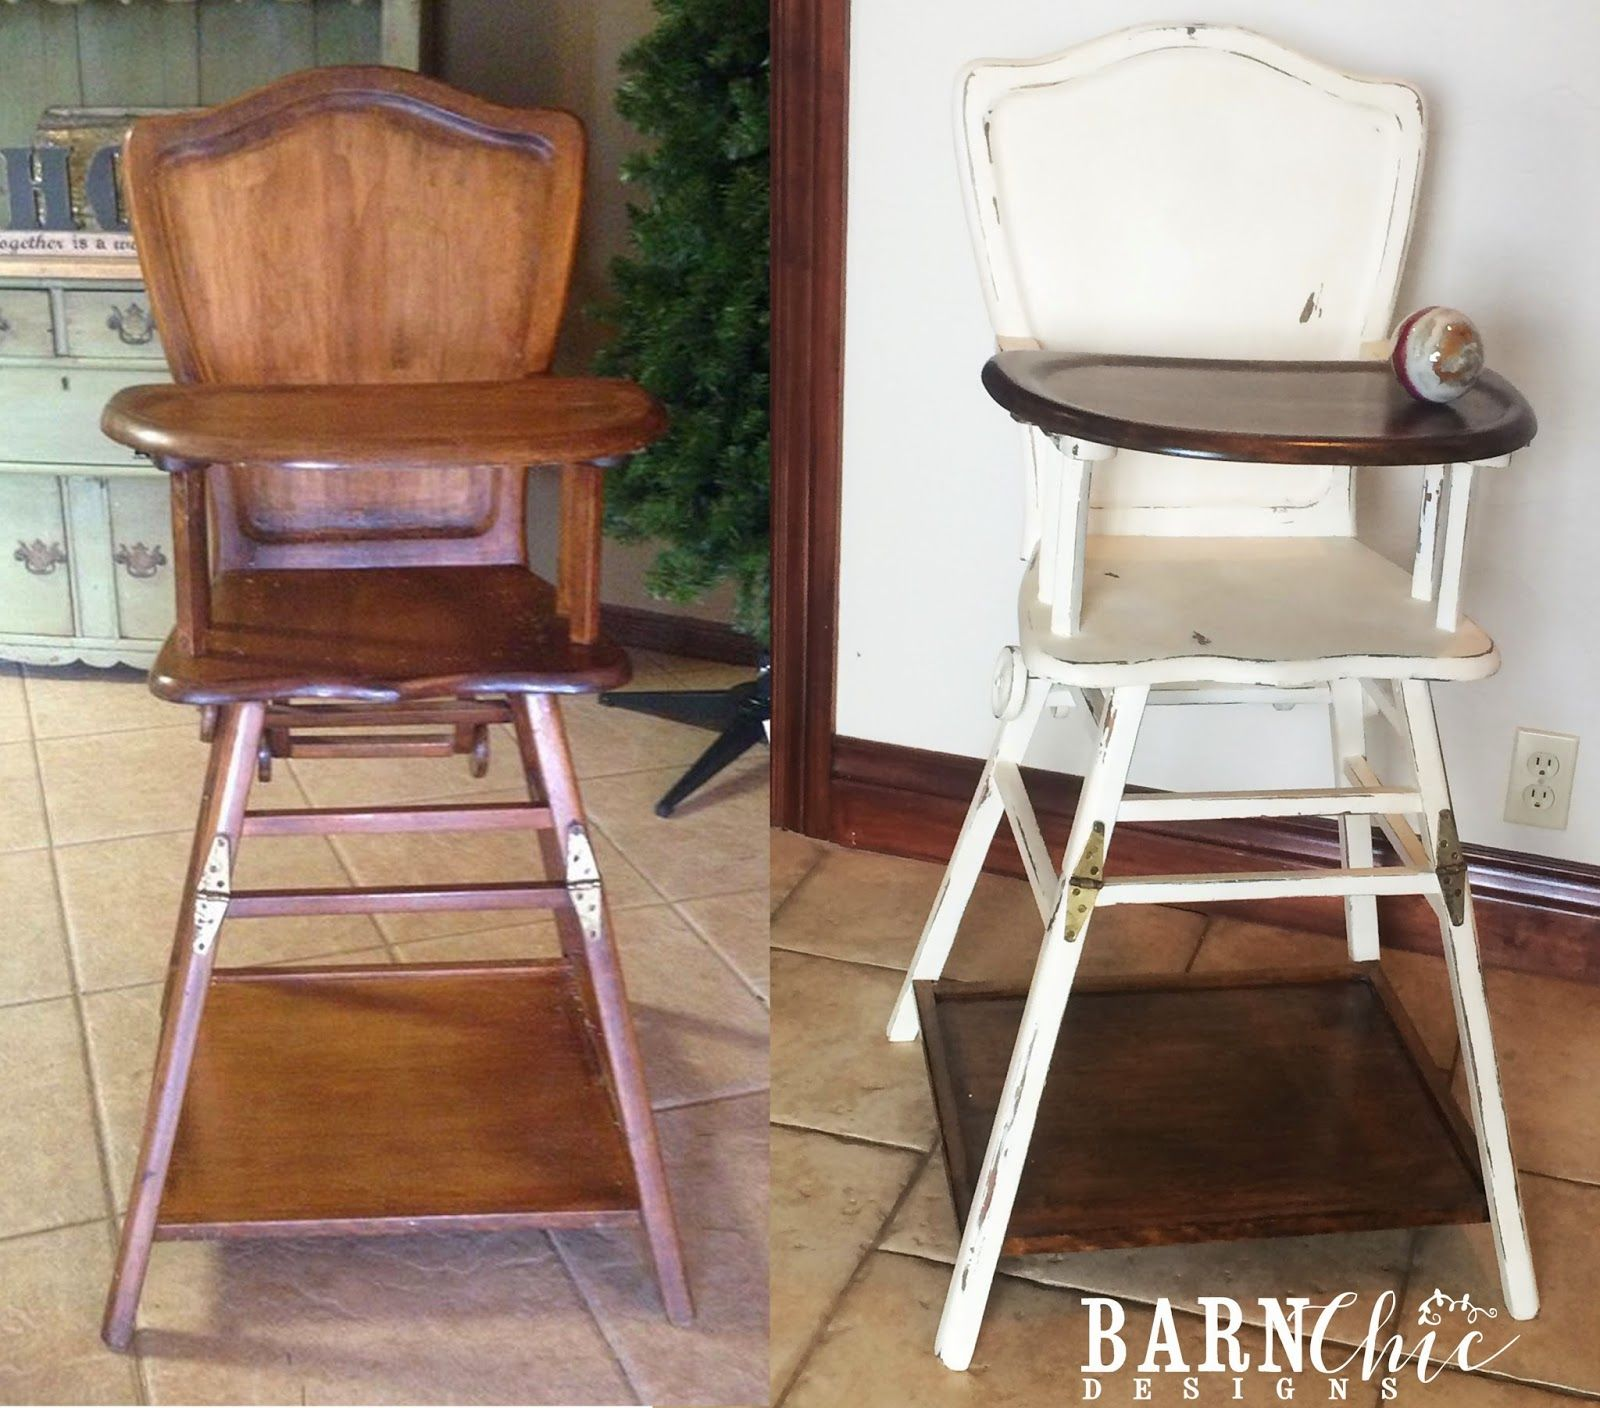 Refinished Antique Old Wooden High Chair By Barn Chic Designs. Two Toned  Refurbished High Chair. Baby FurnitureRefinished ...